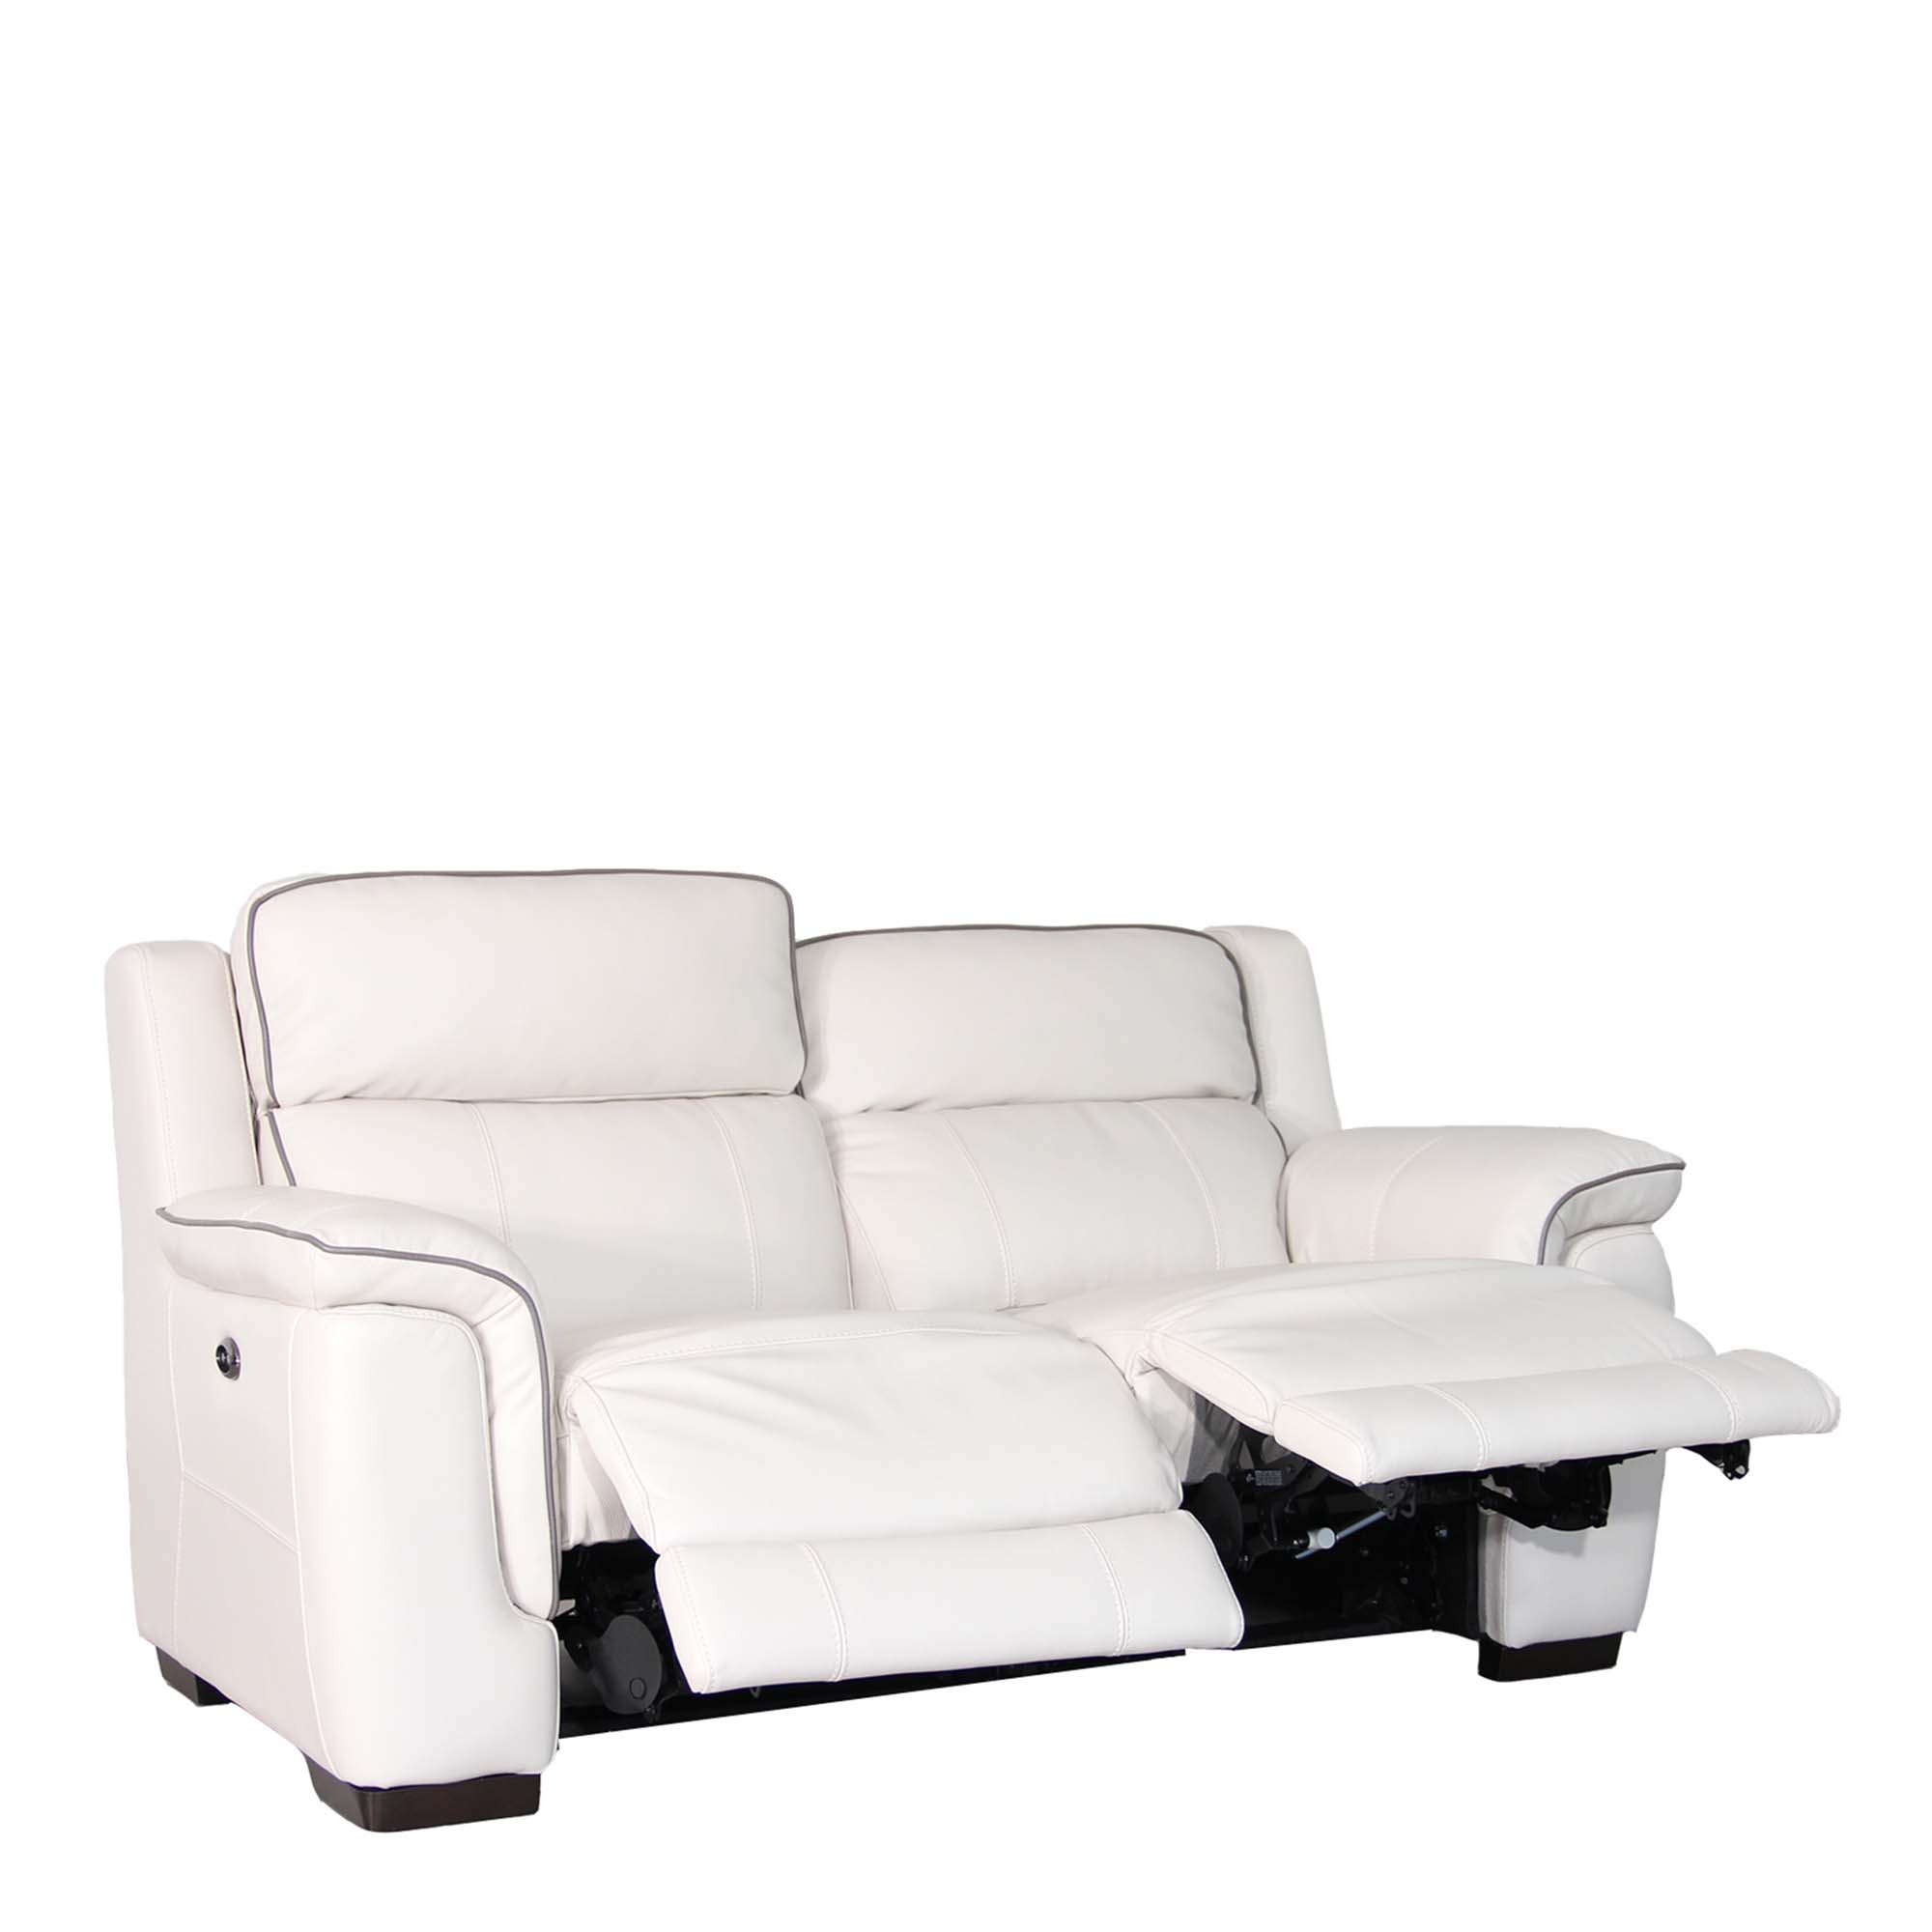 Monza Leather 2 Seat Sofa With Double Power Recliner